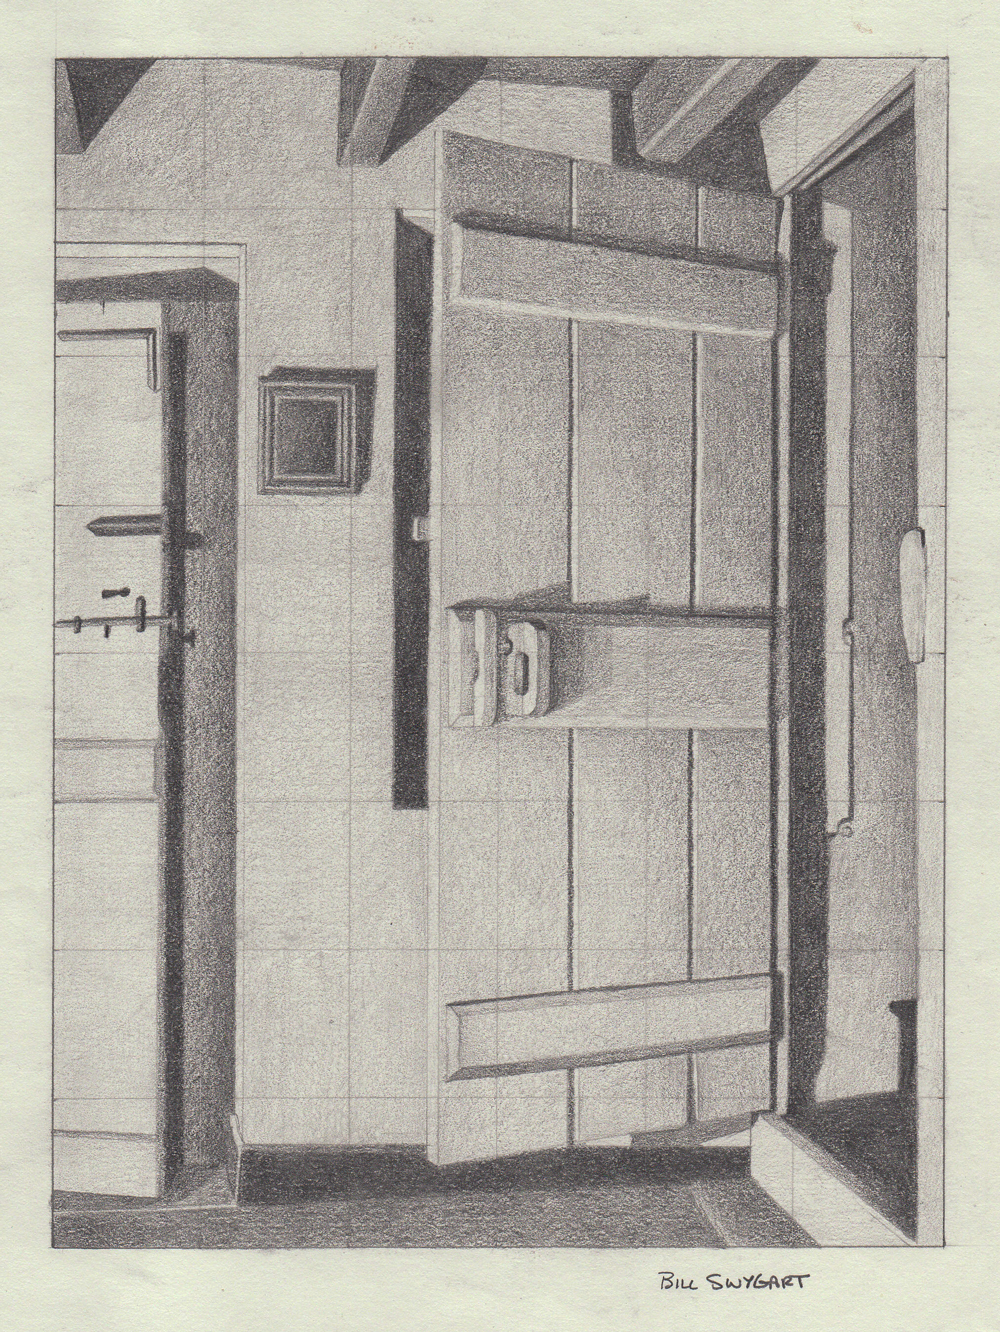 Door pencil drawing - The Open Door 6 X 8 School Project We Were Given A 3 X 4 Copy Of Charles Sheeler S The Open Door And We Were Required To Create A 200 Percent